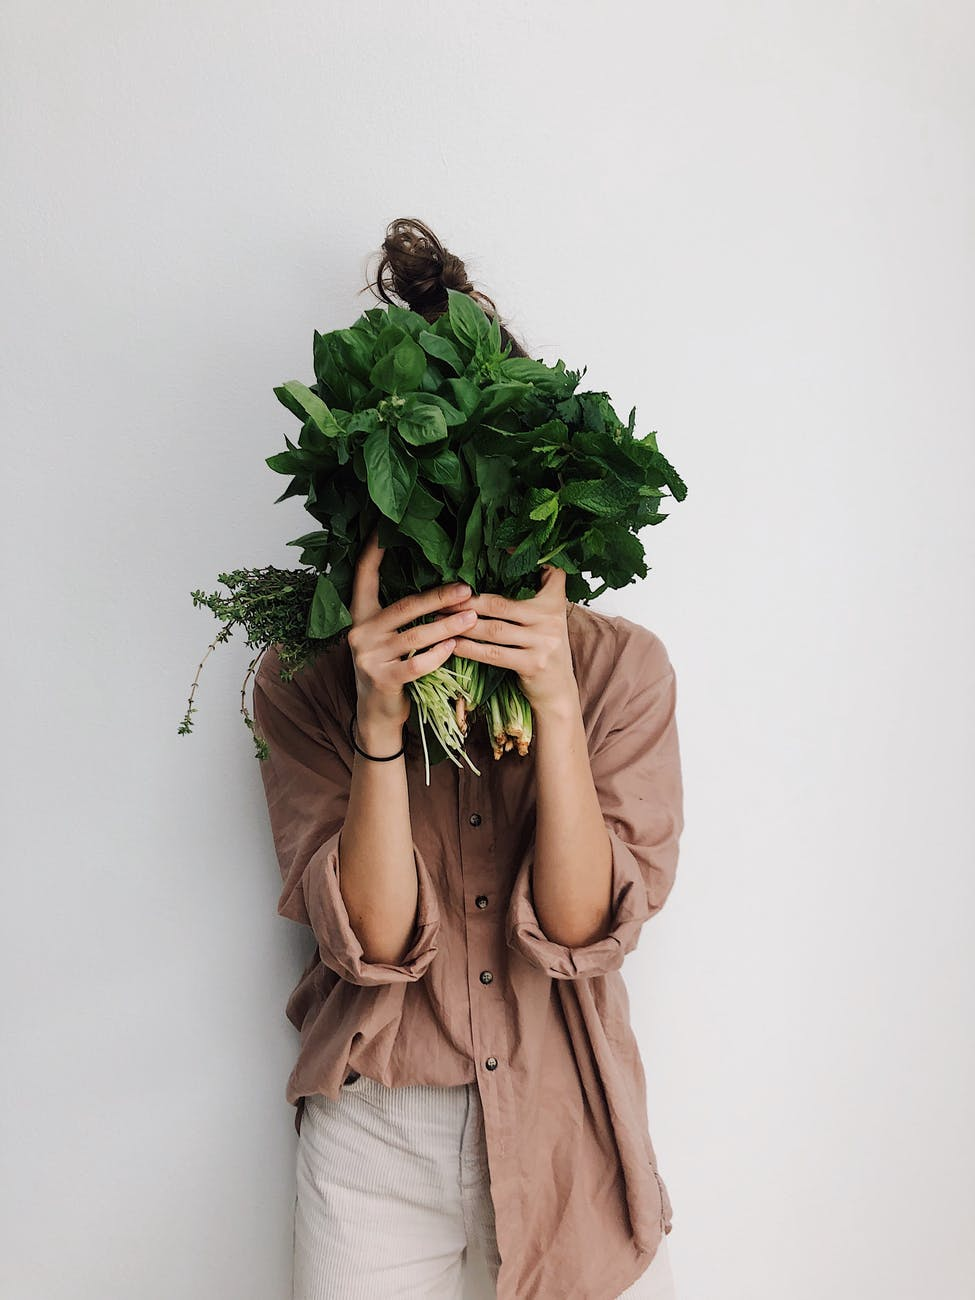 person holding green vegetables